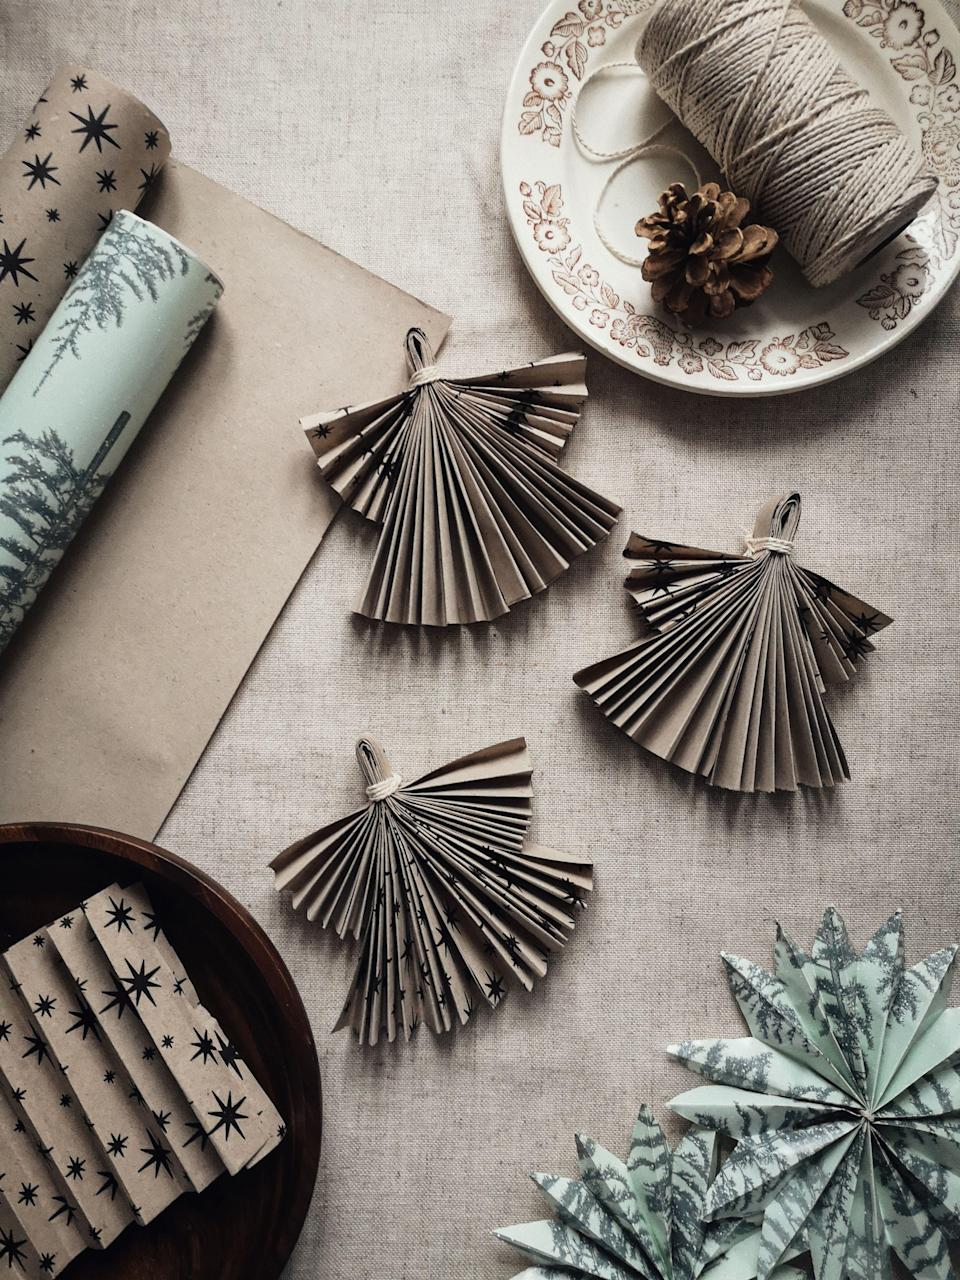 "<p>Looking for Christmas table decorations you can make yourself in next to no time? You've come to the right place!</p><p>Christmas might look a little different this year, but a beautifully decorated Christmas table can lift the spirits and put you in the mood for a party – even if it's just the two of you for lunch, a smaller family affair or you're celebrating solo.</p><p>These DIY Christmas table decorations are easy to make and look seriously impressive. From a homemade Advent candle wreath that makes a beautiful festive table centrepiece, to simple place settings made from sprigs of seasonal berries and loosely folded linen, find gorgeous Christmas table decorations you can make yourself right here.</p><p>For supplies, try your local garden centre or craft shop such as <a href=""https://www.hobbycraft.co.uk/"" rel=""nofollow noopener"" target=""_blank"" data-ylk=""slk:Hobbycraft"" class=""link rapid-noclick-resp"">Hobbycraft</a>.</p>"